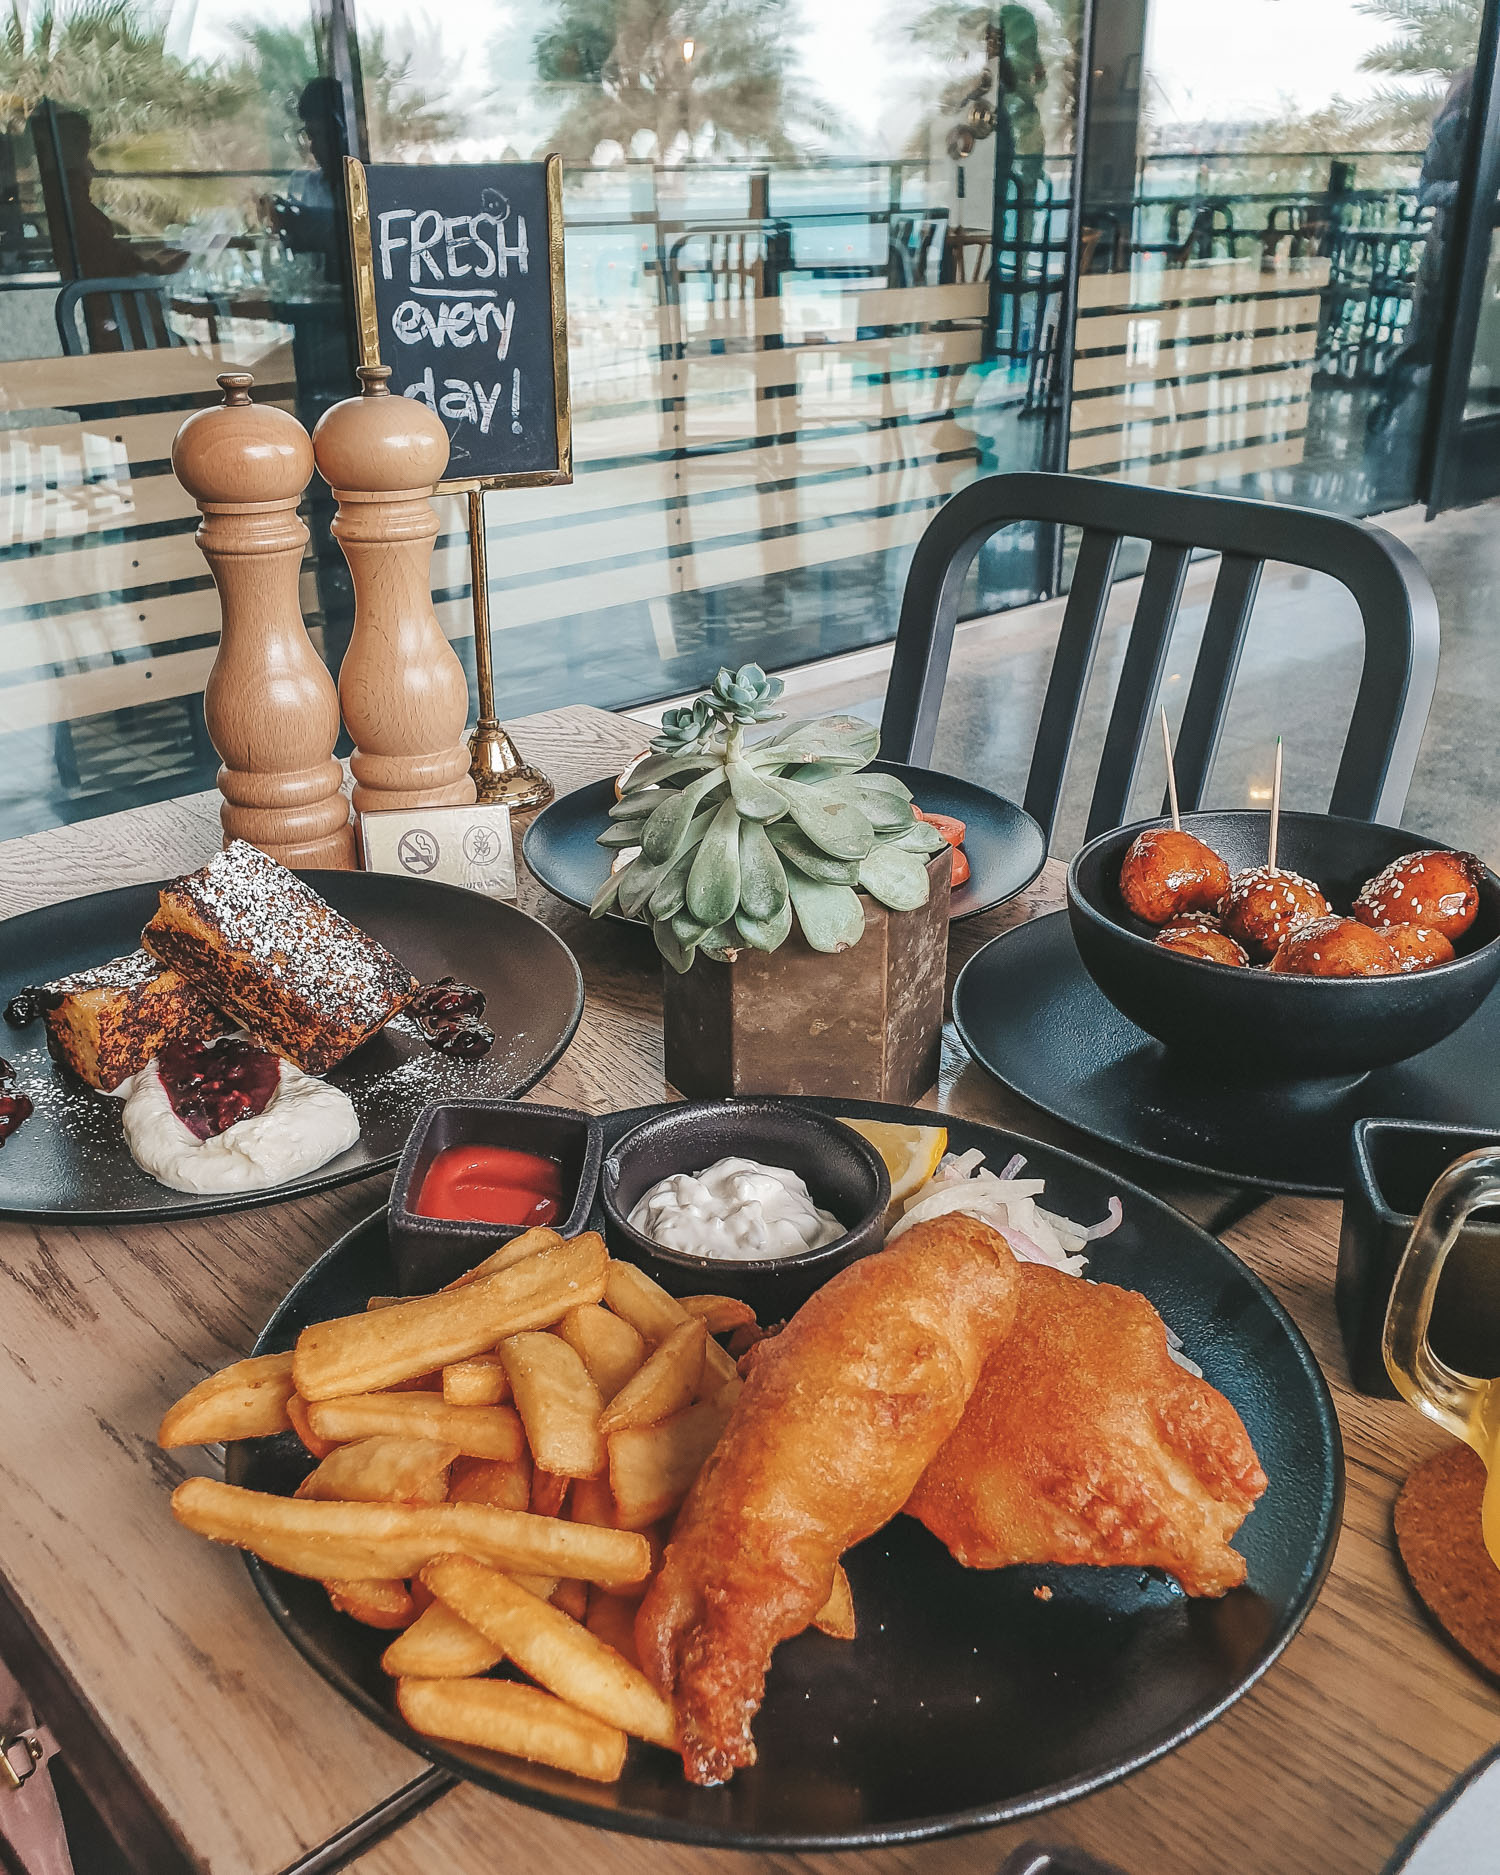 Tawa Bakery 100% gluten-free restaurant in Abu Dhabi fish and chips